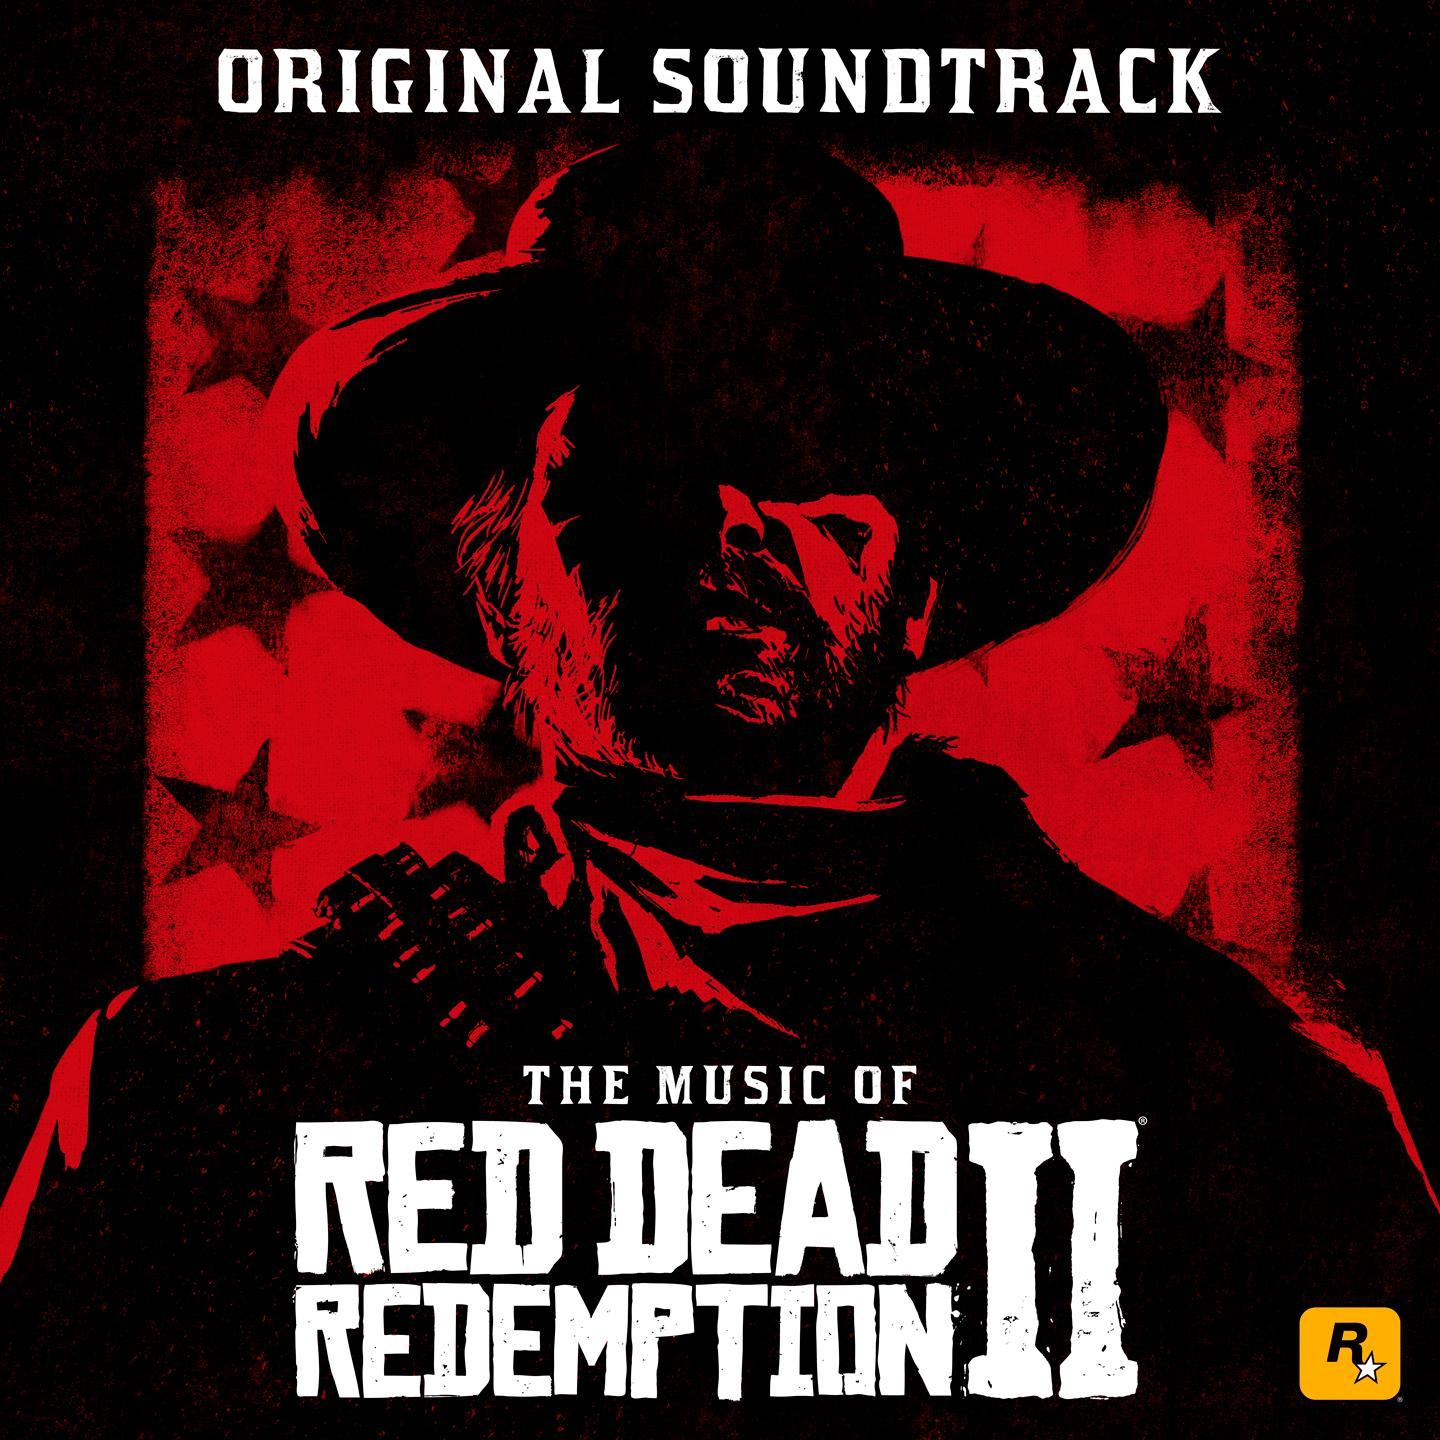 The Music of Red Dead Redemption 2: Original Soundtrack Available July 12